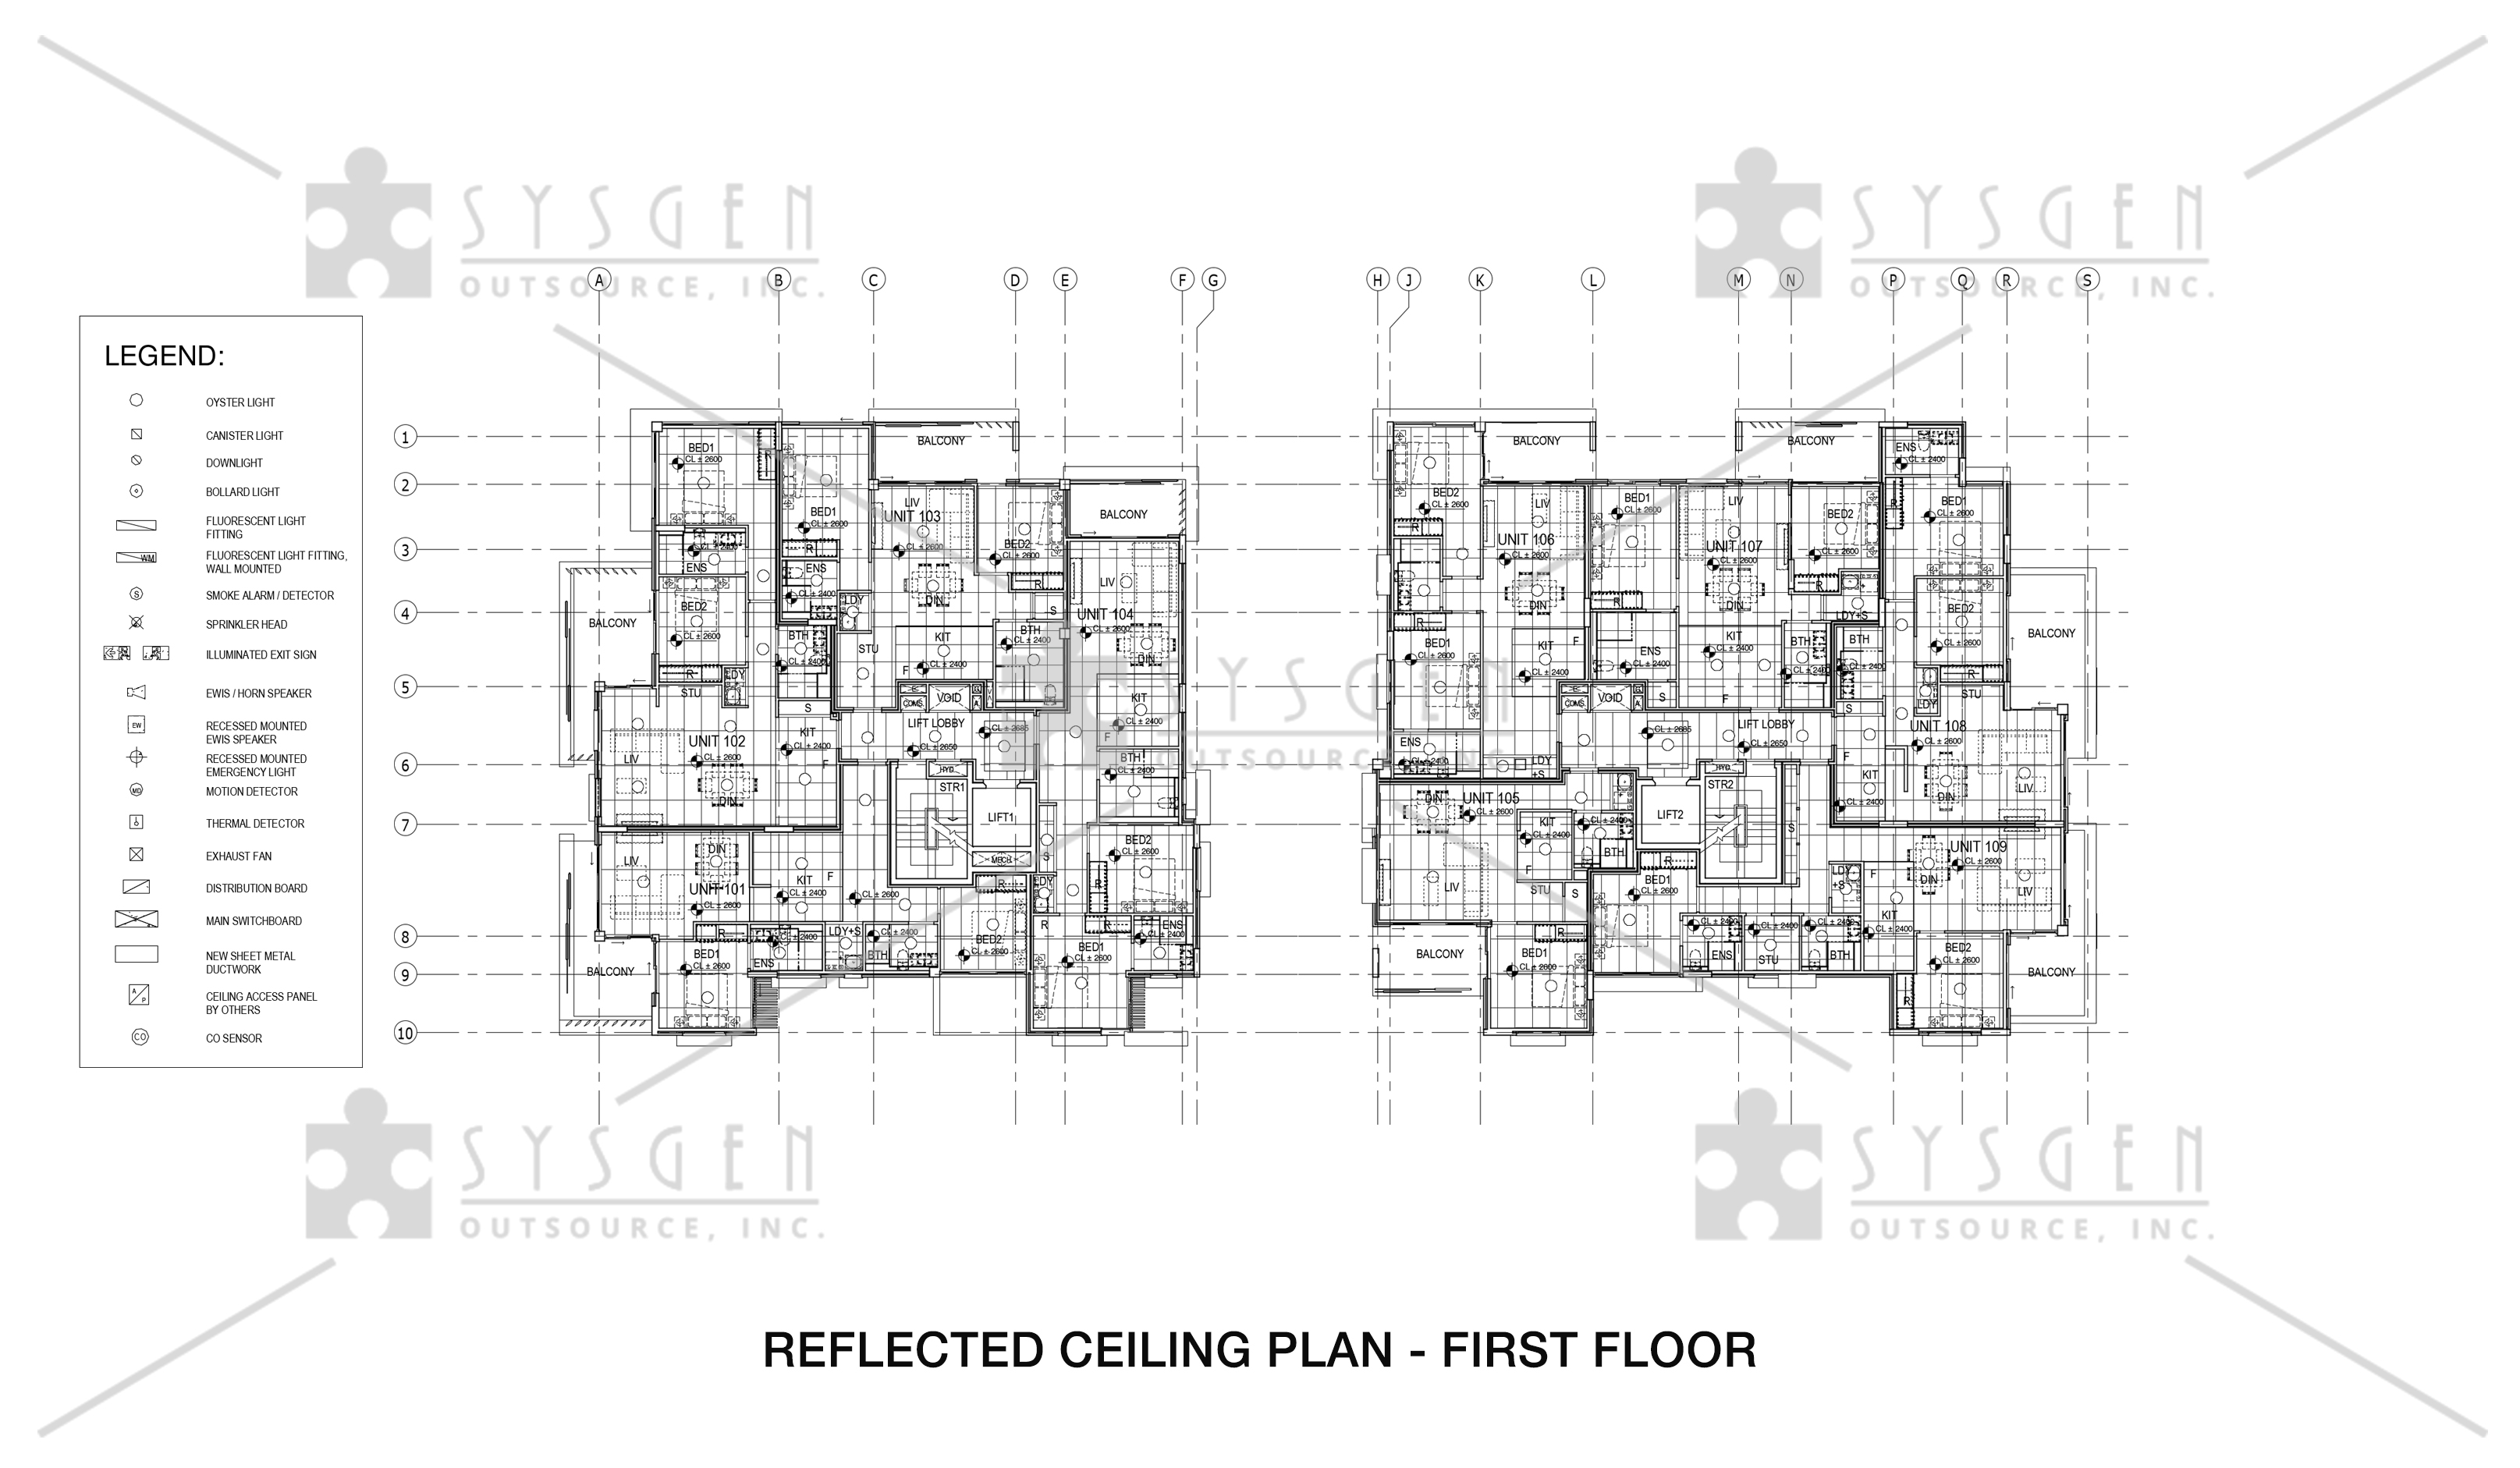 sysgen-outsource-cad-outsourcing-services-cad-conversion-revit-4-storey-residential27